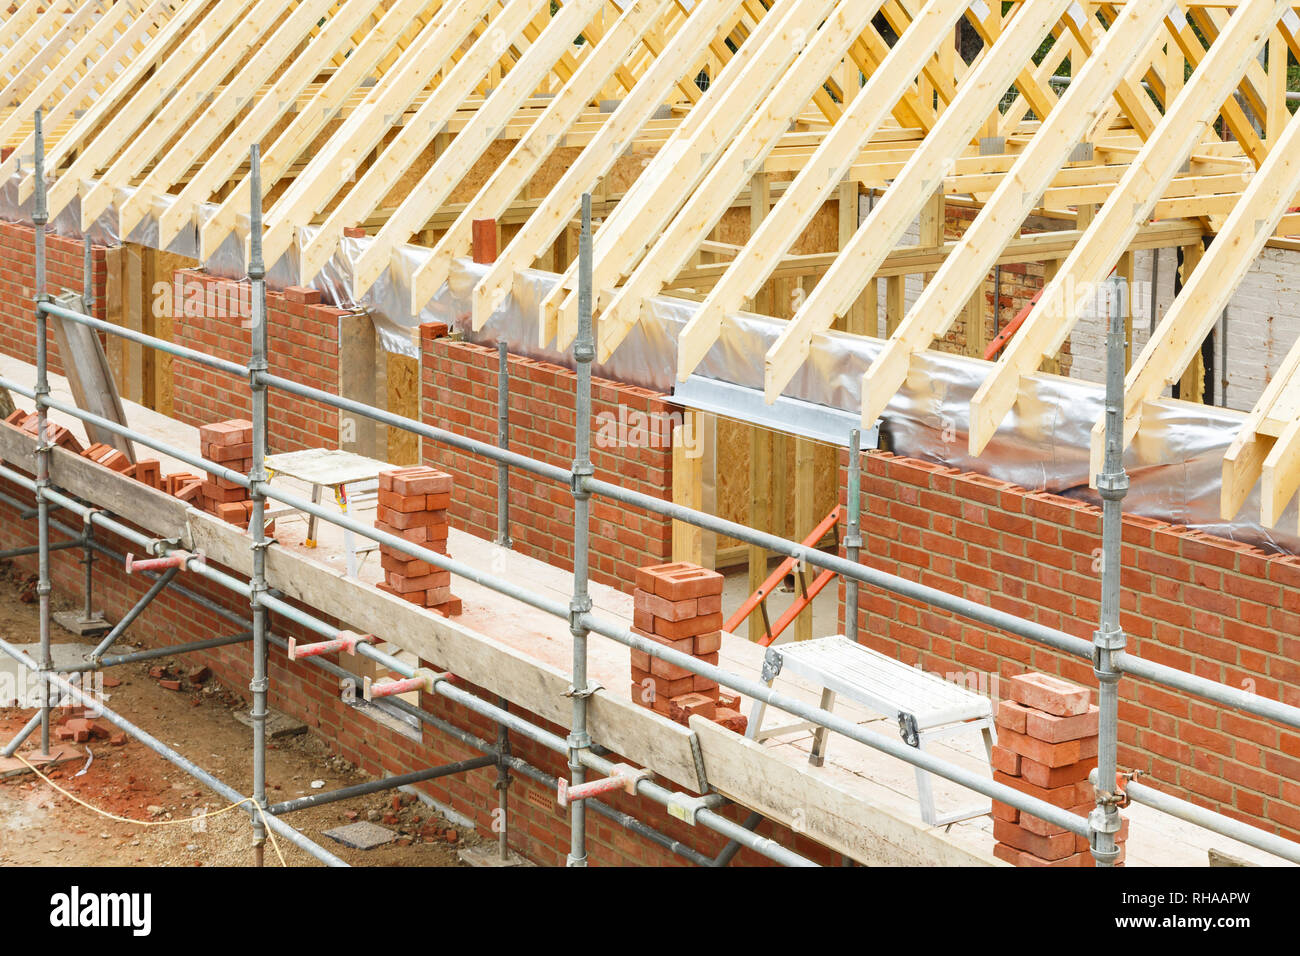 Construction site in UK with a house built from brick and timber, featuring brickwork, roof trusses and scaffolding - Stock Image